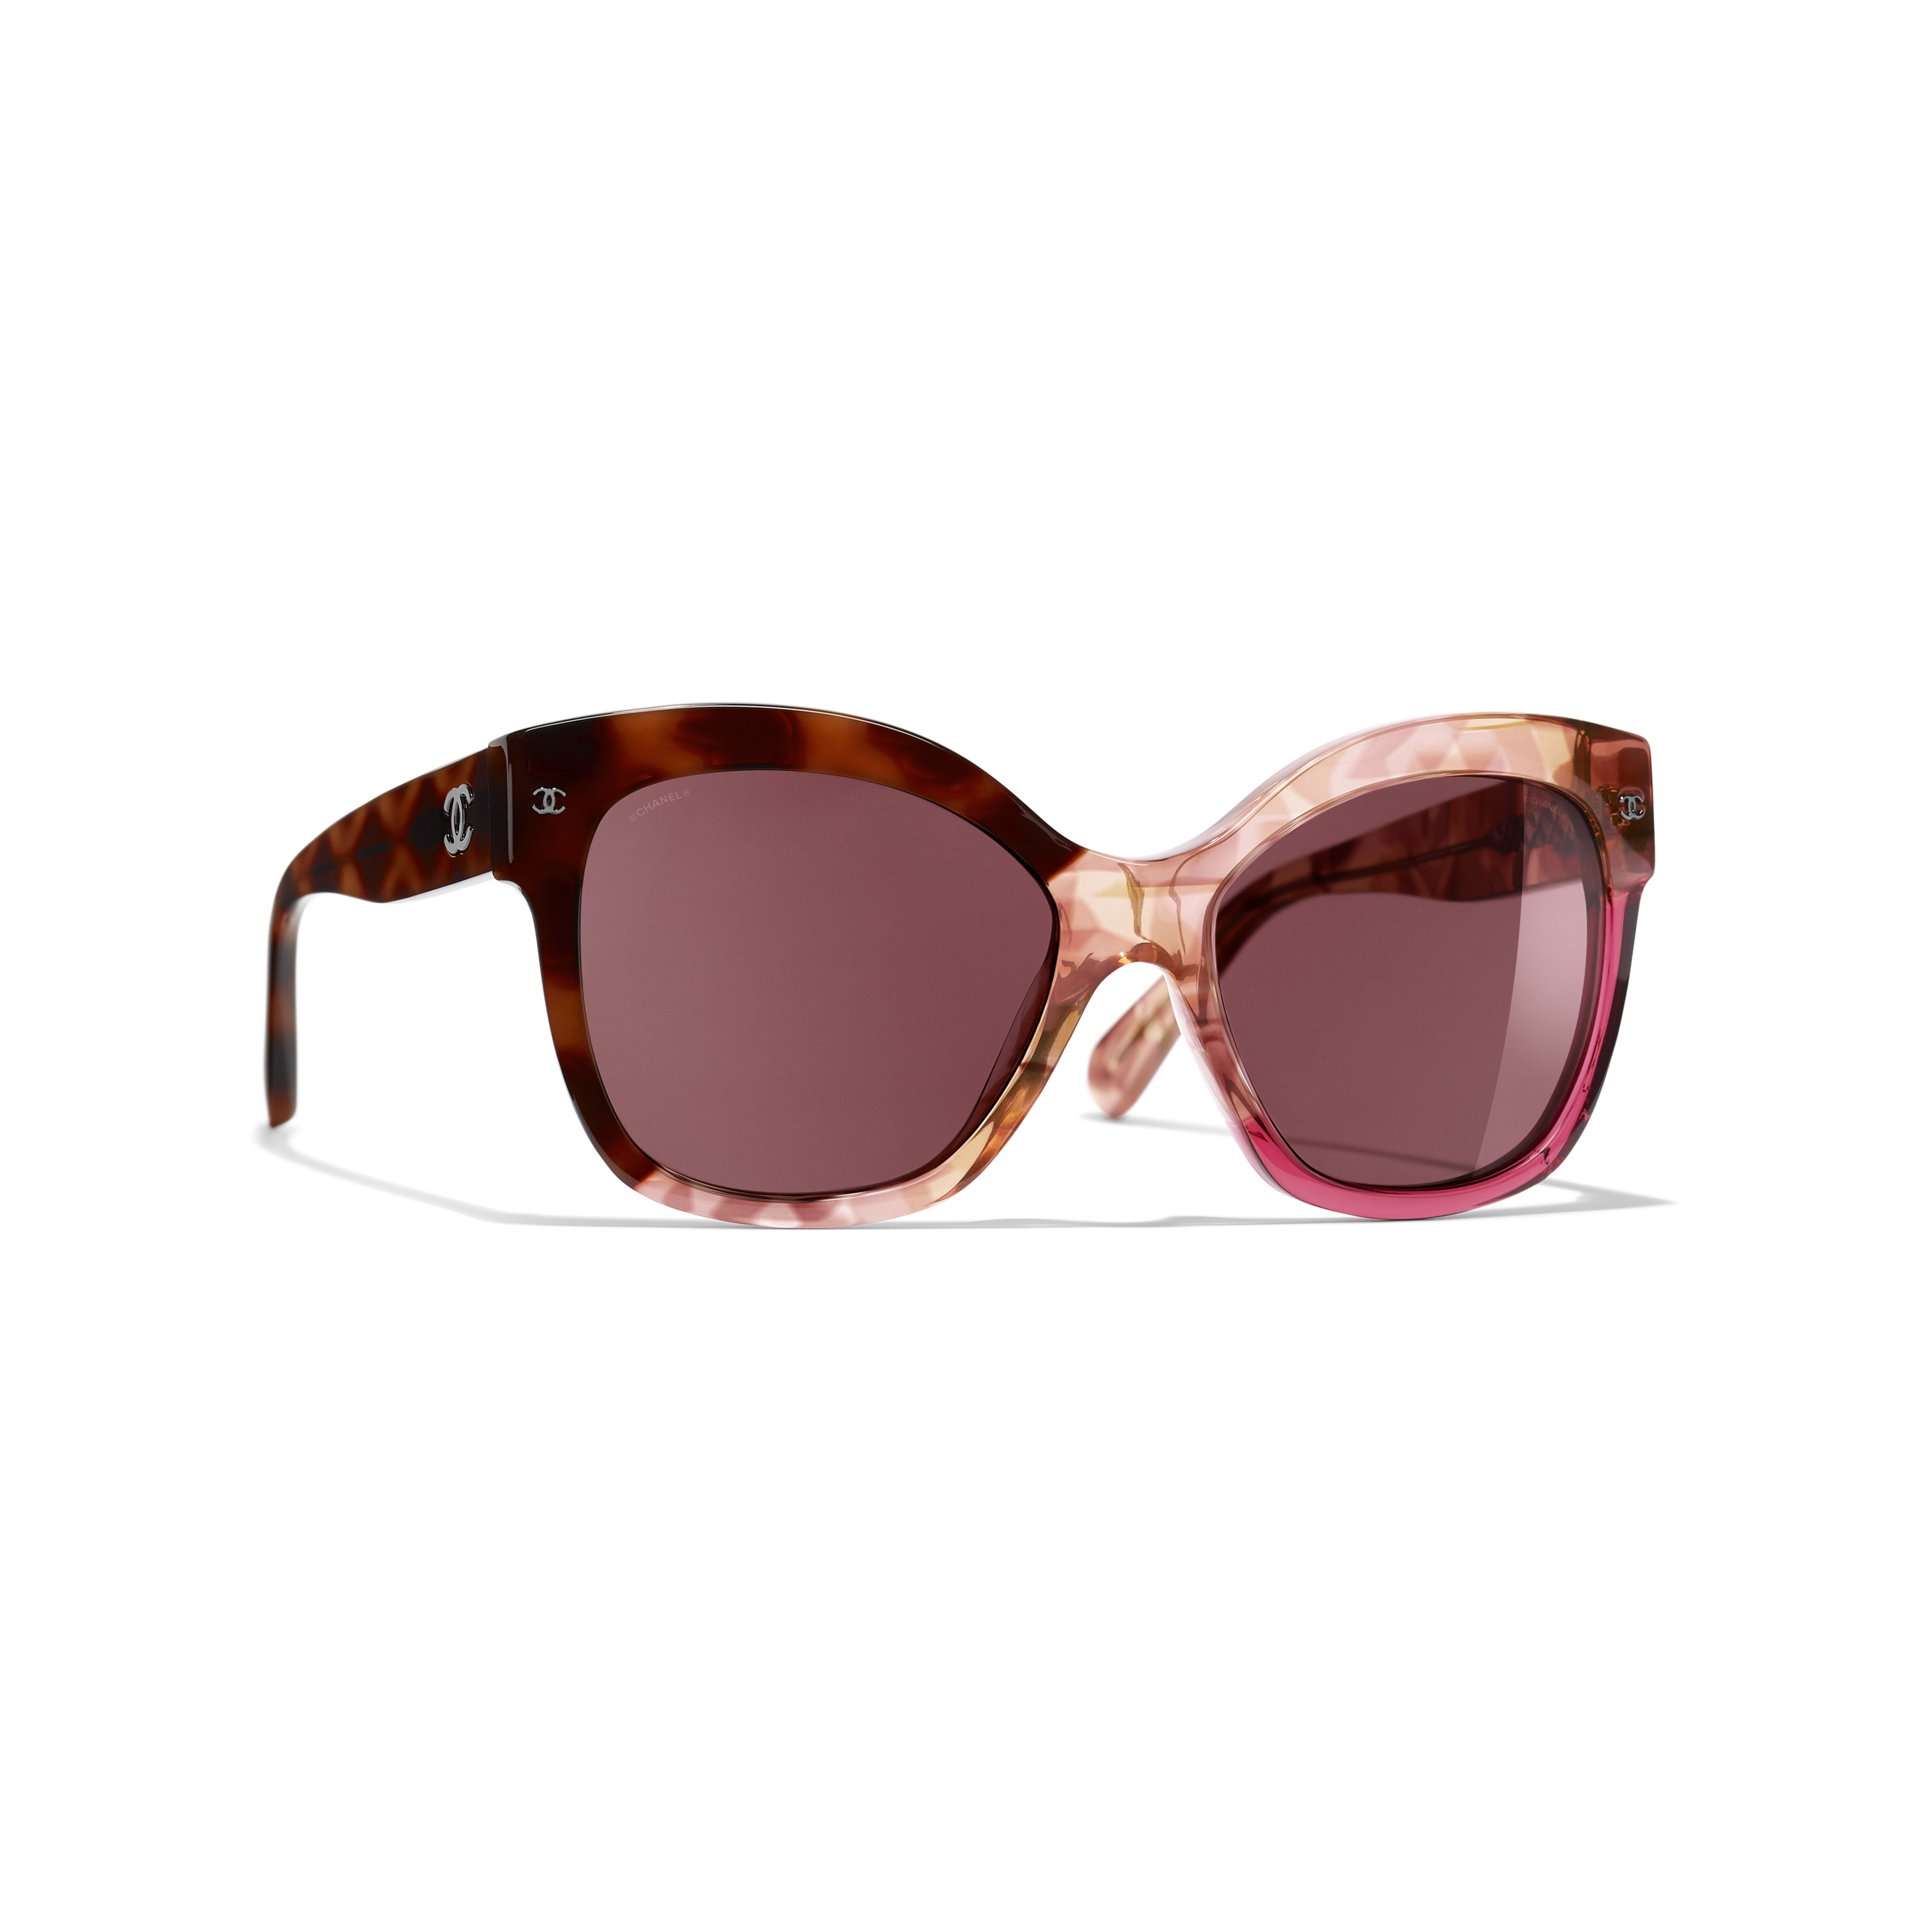 Butterfly Sunglasses - Dark Tortoise & Pink - Acetate - Default view - see standard sized version